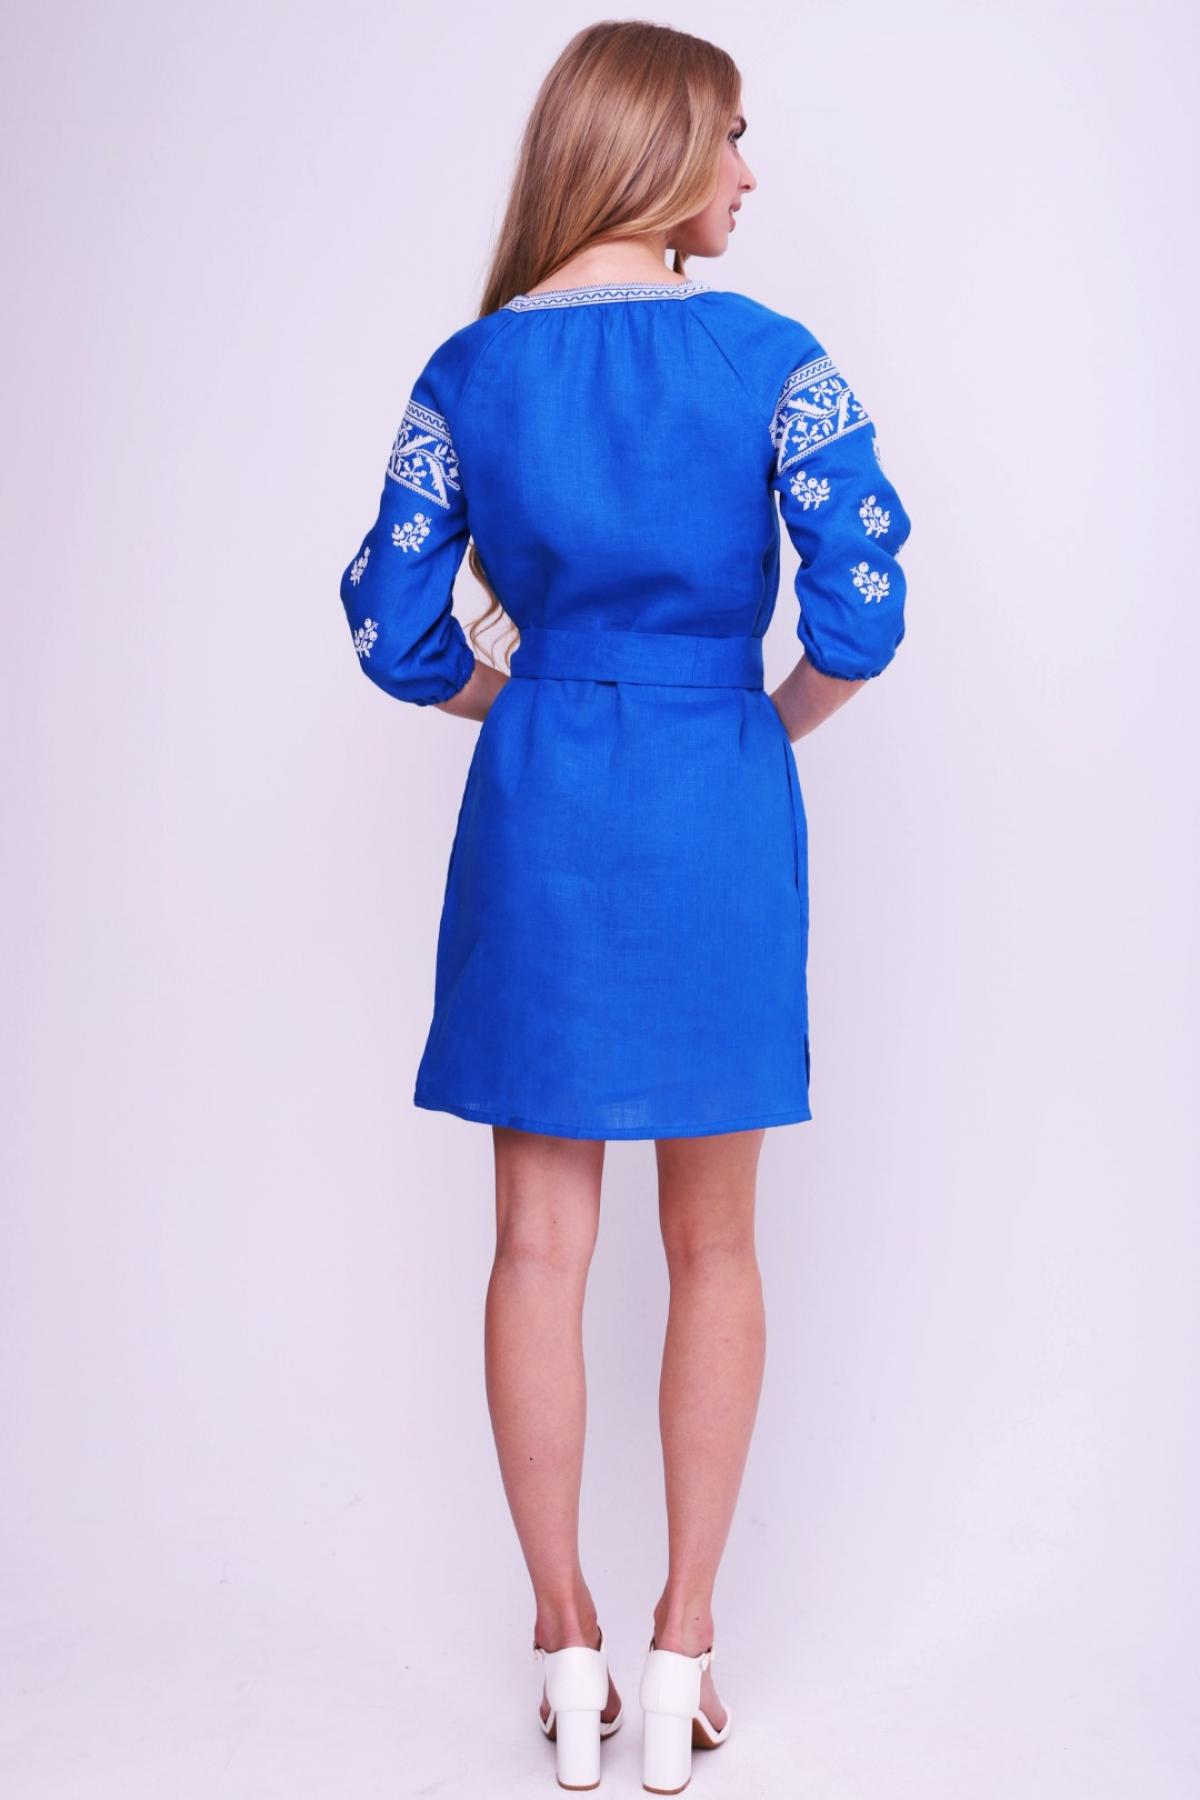 Rich blue dress with contrasting white embroidery. Photo №2. | Narodnyi dim Ukraine